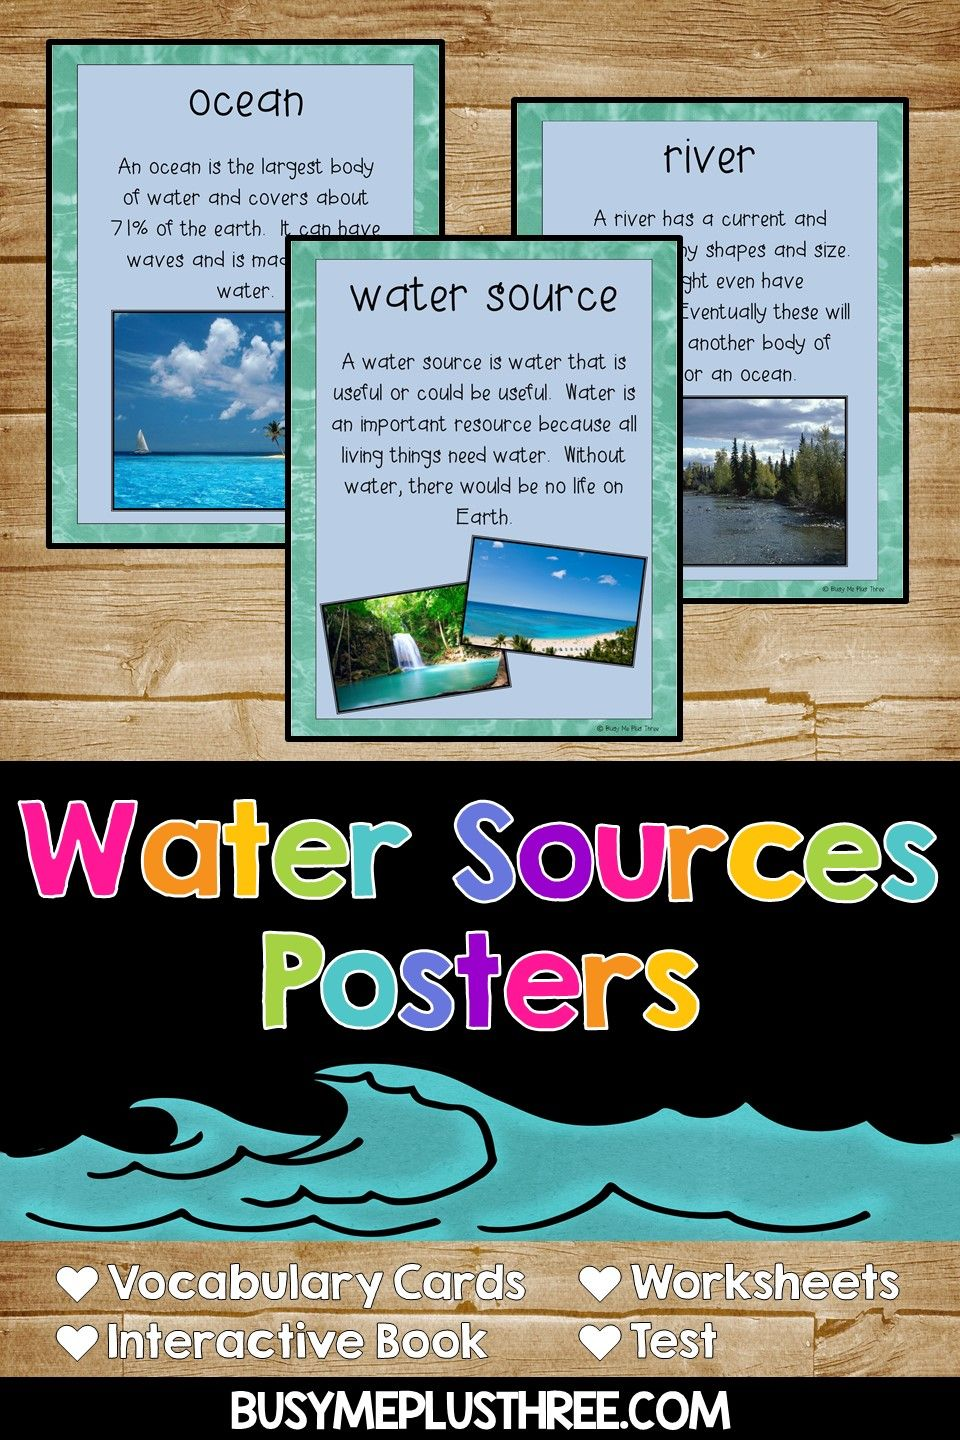 Water Sources Water Sources Worksheets For Kids All About Water [ 1440 x 960 Pixel ]